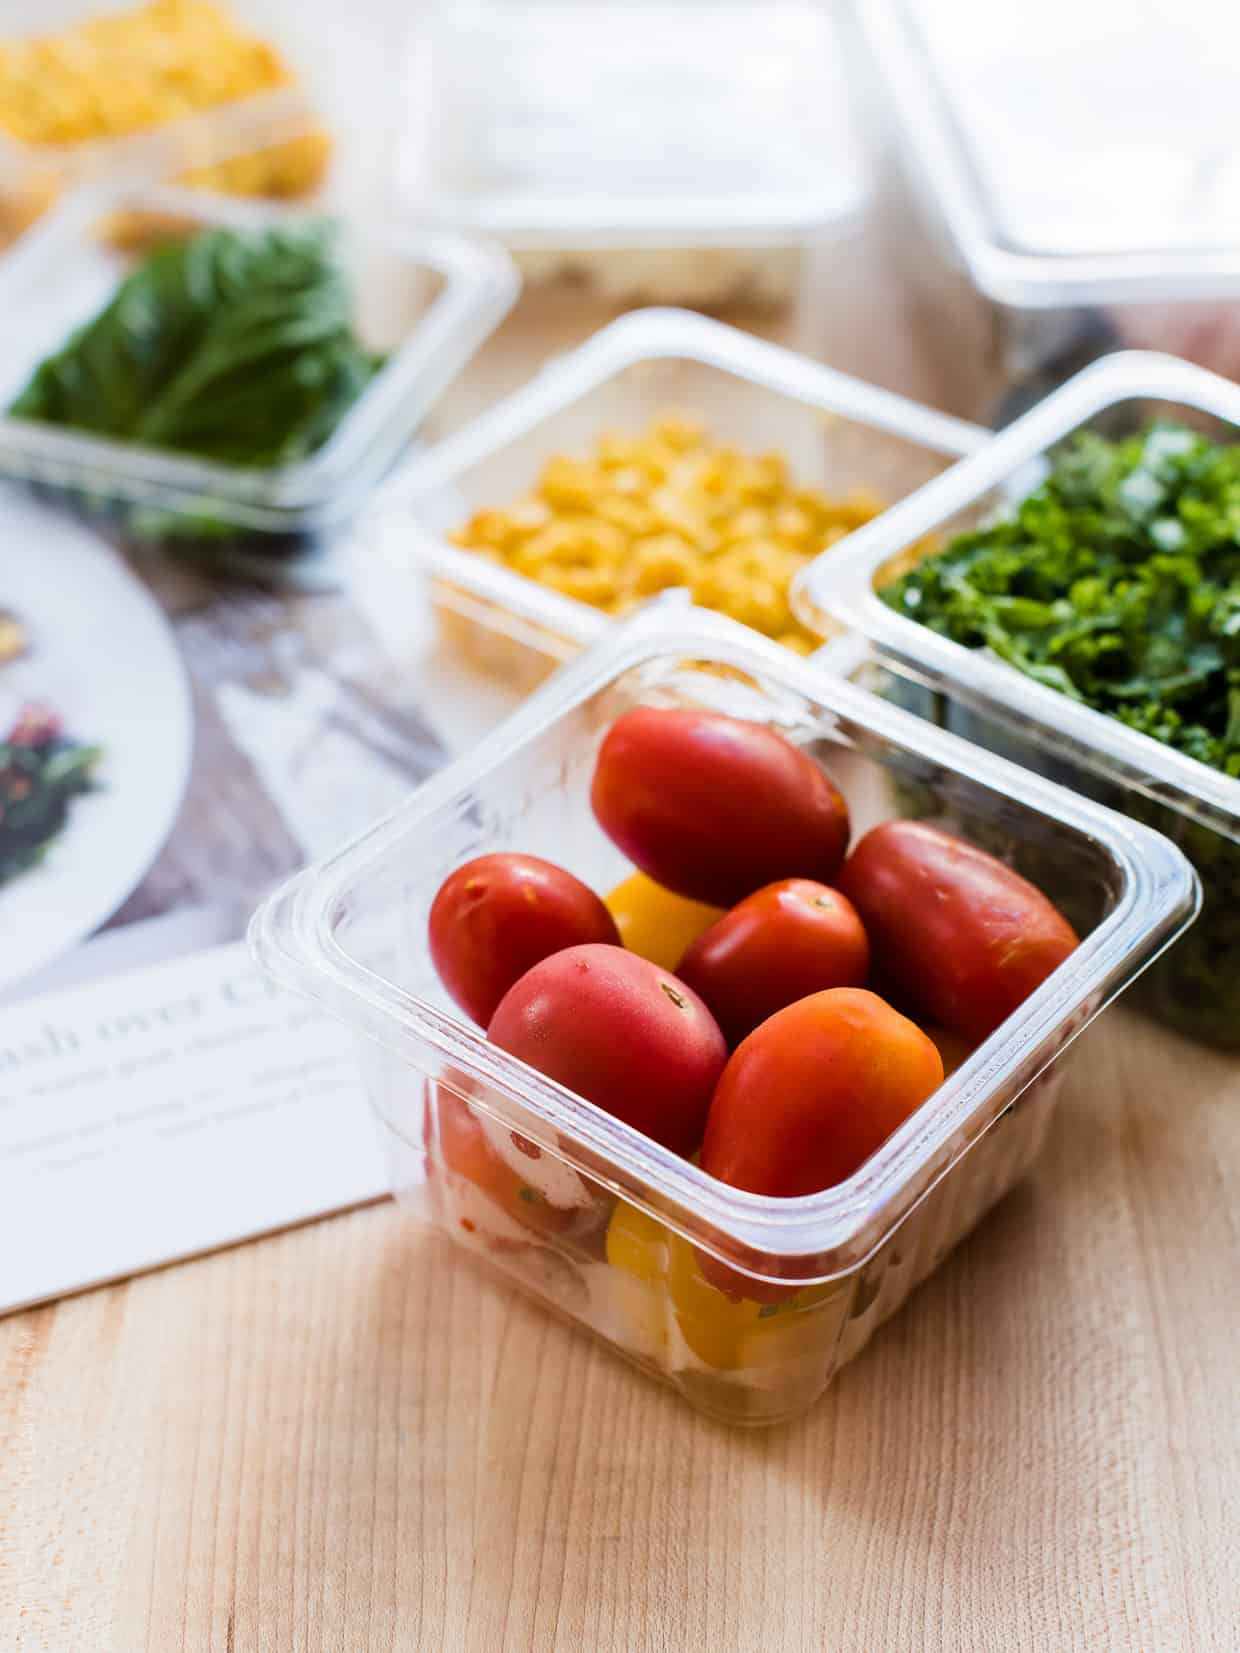 Terra's Kitchen Review -- Ever wonder if you should try a meal kit delivery service? I gave Terra's Kitchen a try, and here's what I thought.